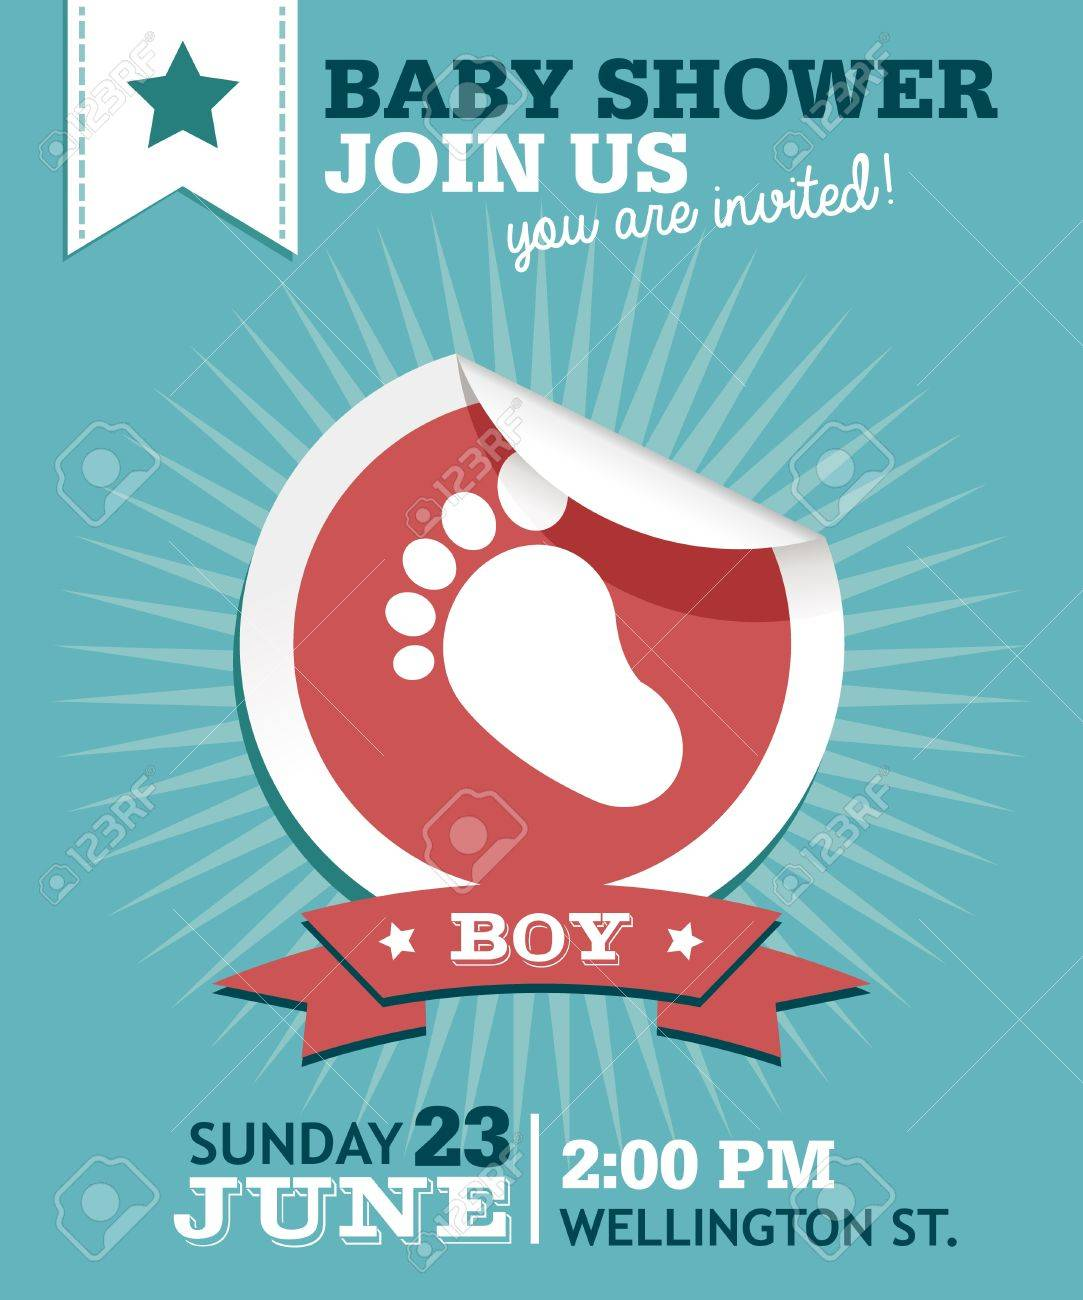 Exelent Baby Shower Invitation Greetings Photo - Invitations and ...